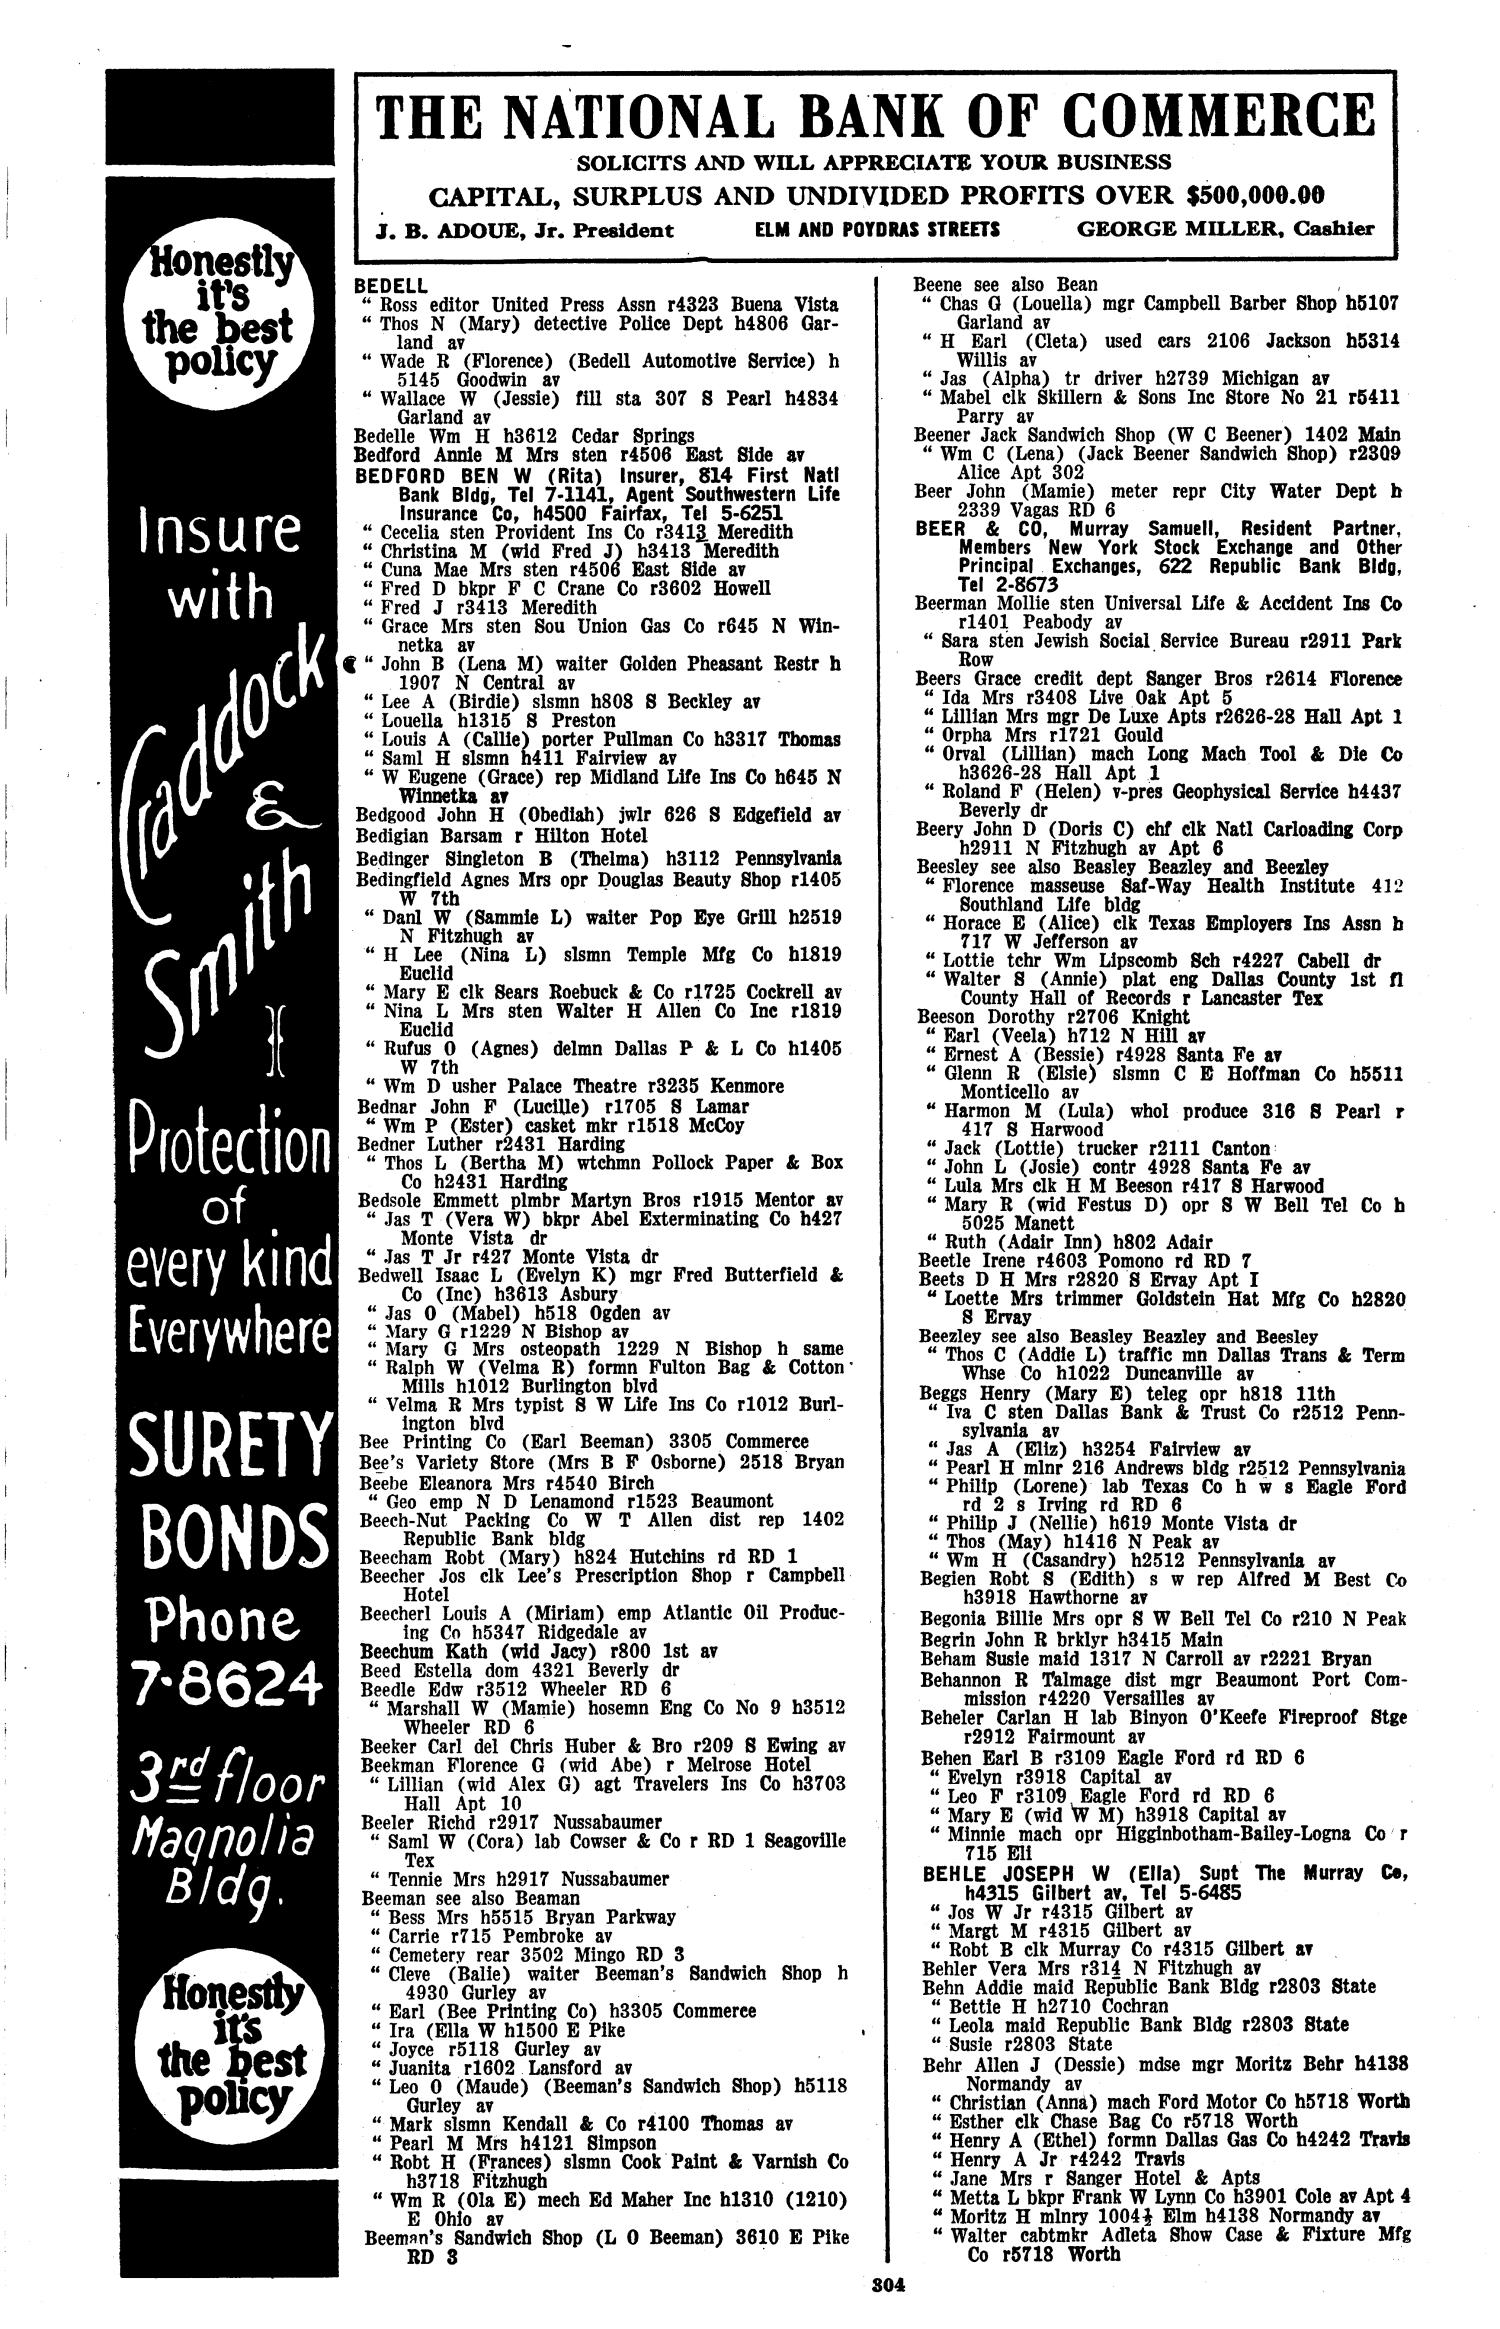 Dallas City Directory 1936 Page 304 The Portal to Texas History